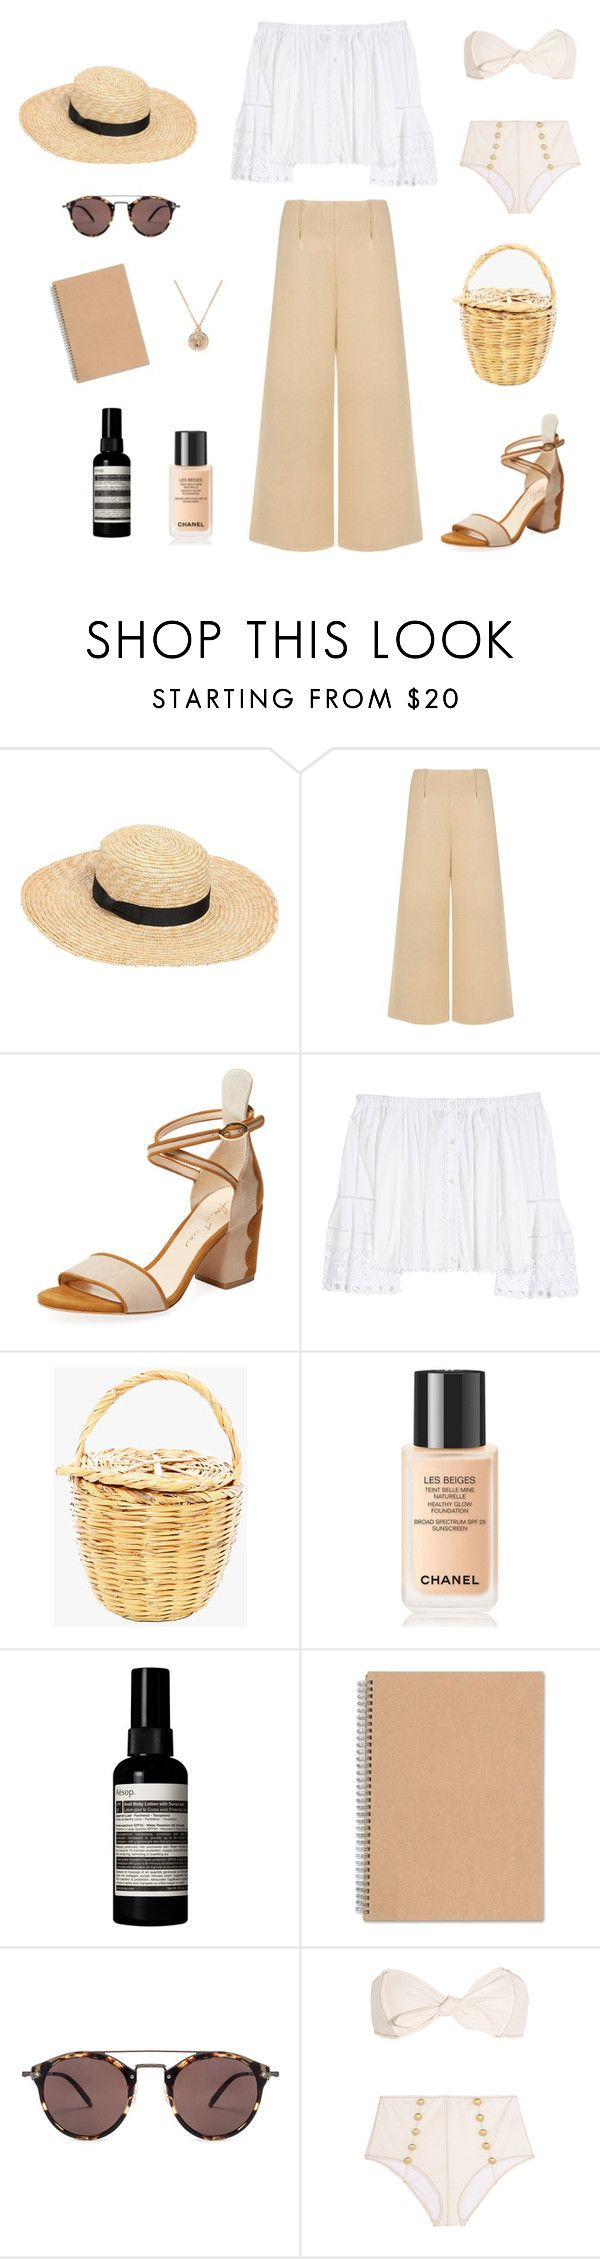 """""""on holiday"""" by coffee-and-crosses ❤ liked on Polyvore featuring Lack of Color, C/MEO COLLECTIVE, Isa Tapia, Carolina Herrera, Chanel, Aesop, Oliver Peoples, Lisa Marie Fernandez and Versace"""